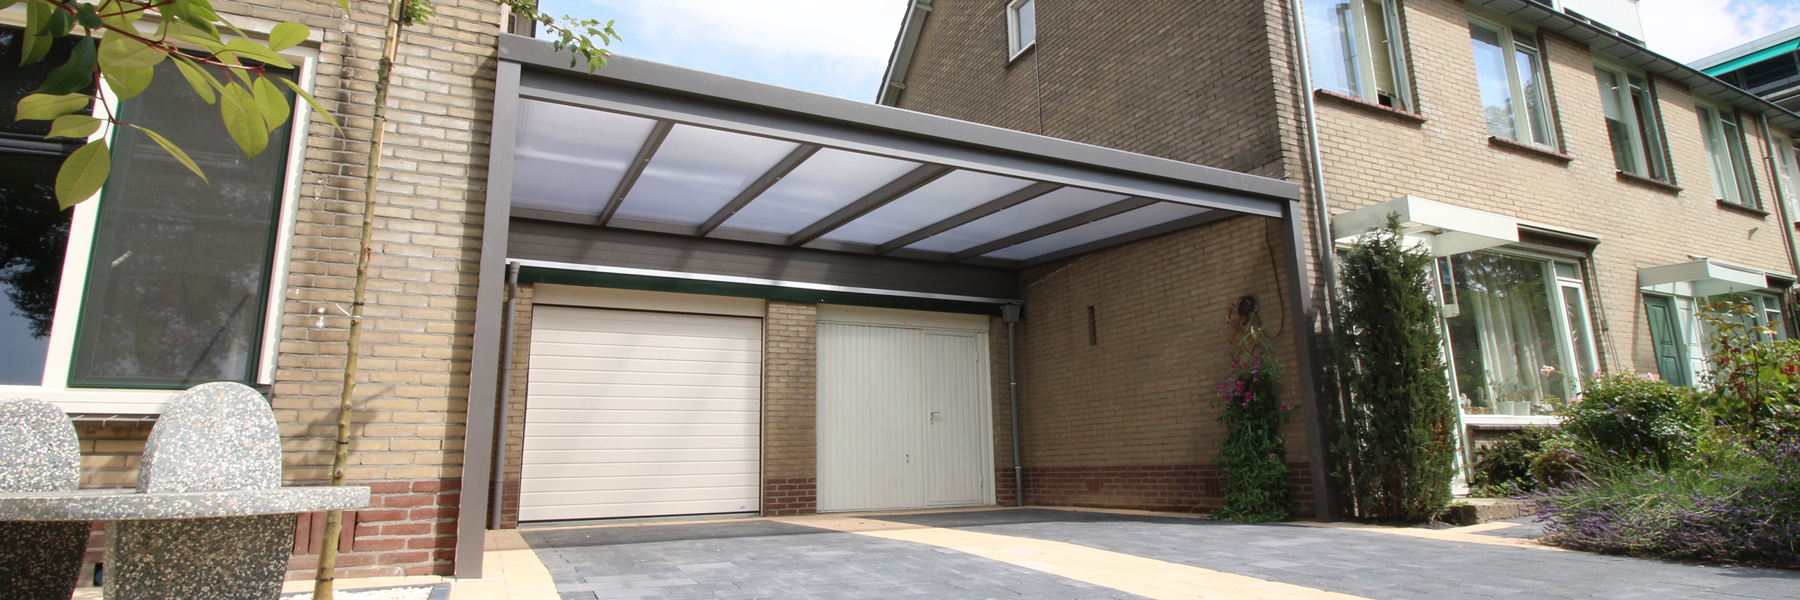 tdm-sliders-carports2